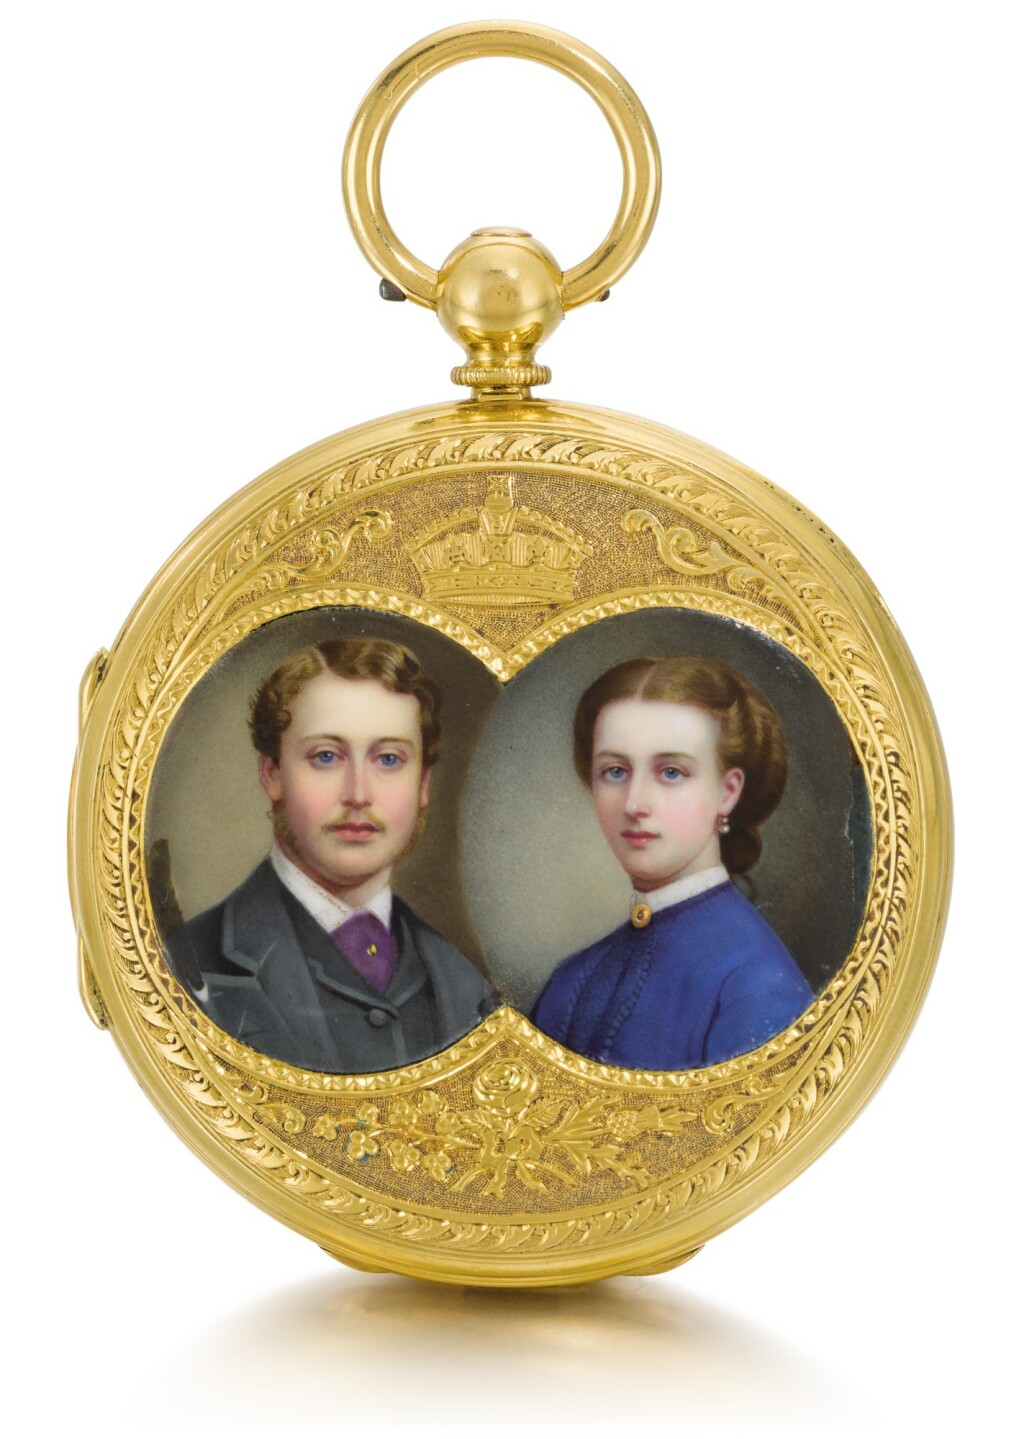 JAMES MCCABE, LONDON | A VERY FINE AND HISTORICALLY INTERESTING 22CT GOLD DUPLEX CLOCK WATCH MADE TO CELEBRATE THE 1863 MARRIAGE OF H.R.H. ALBERT EDWARD, PRINCE OF WALES TO PRINCESS ALEXANDRA OF DENMARK  1864